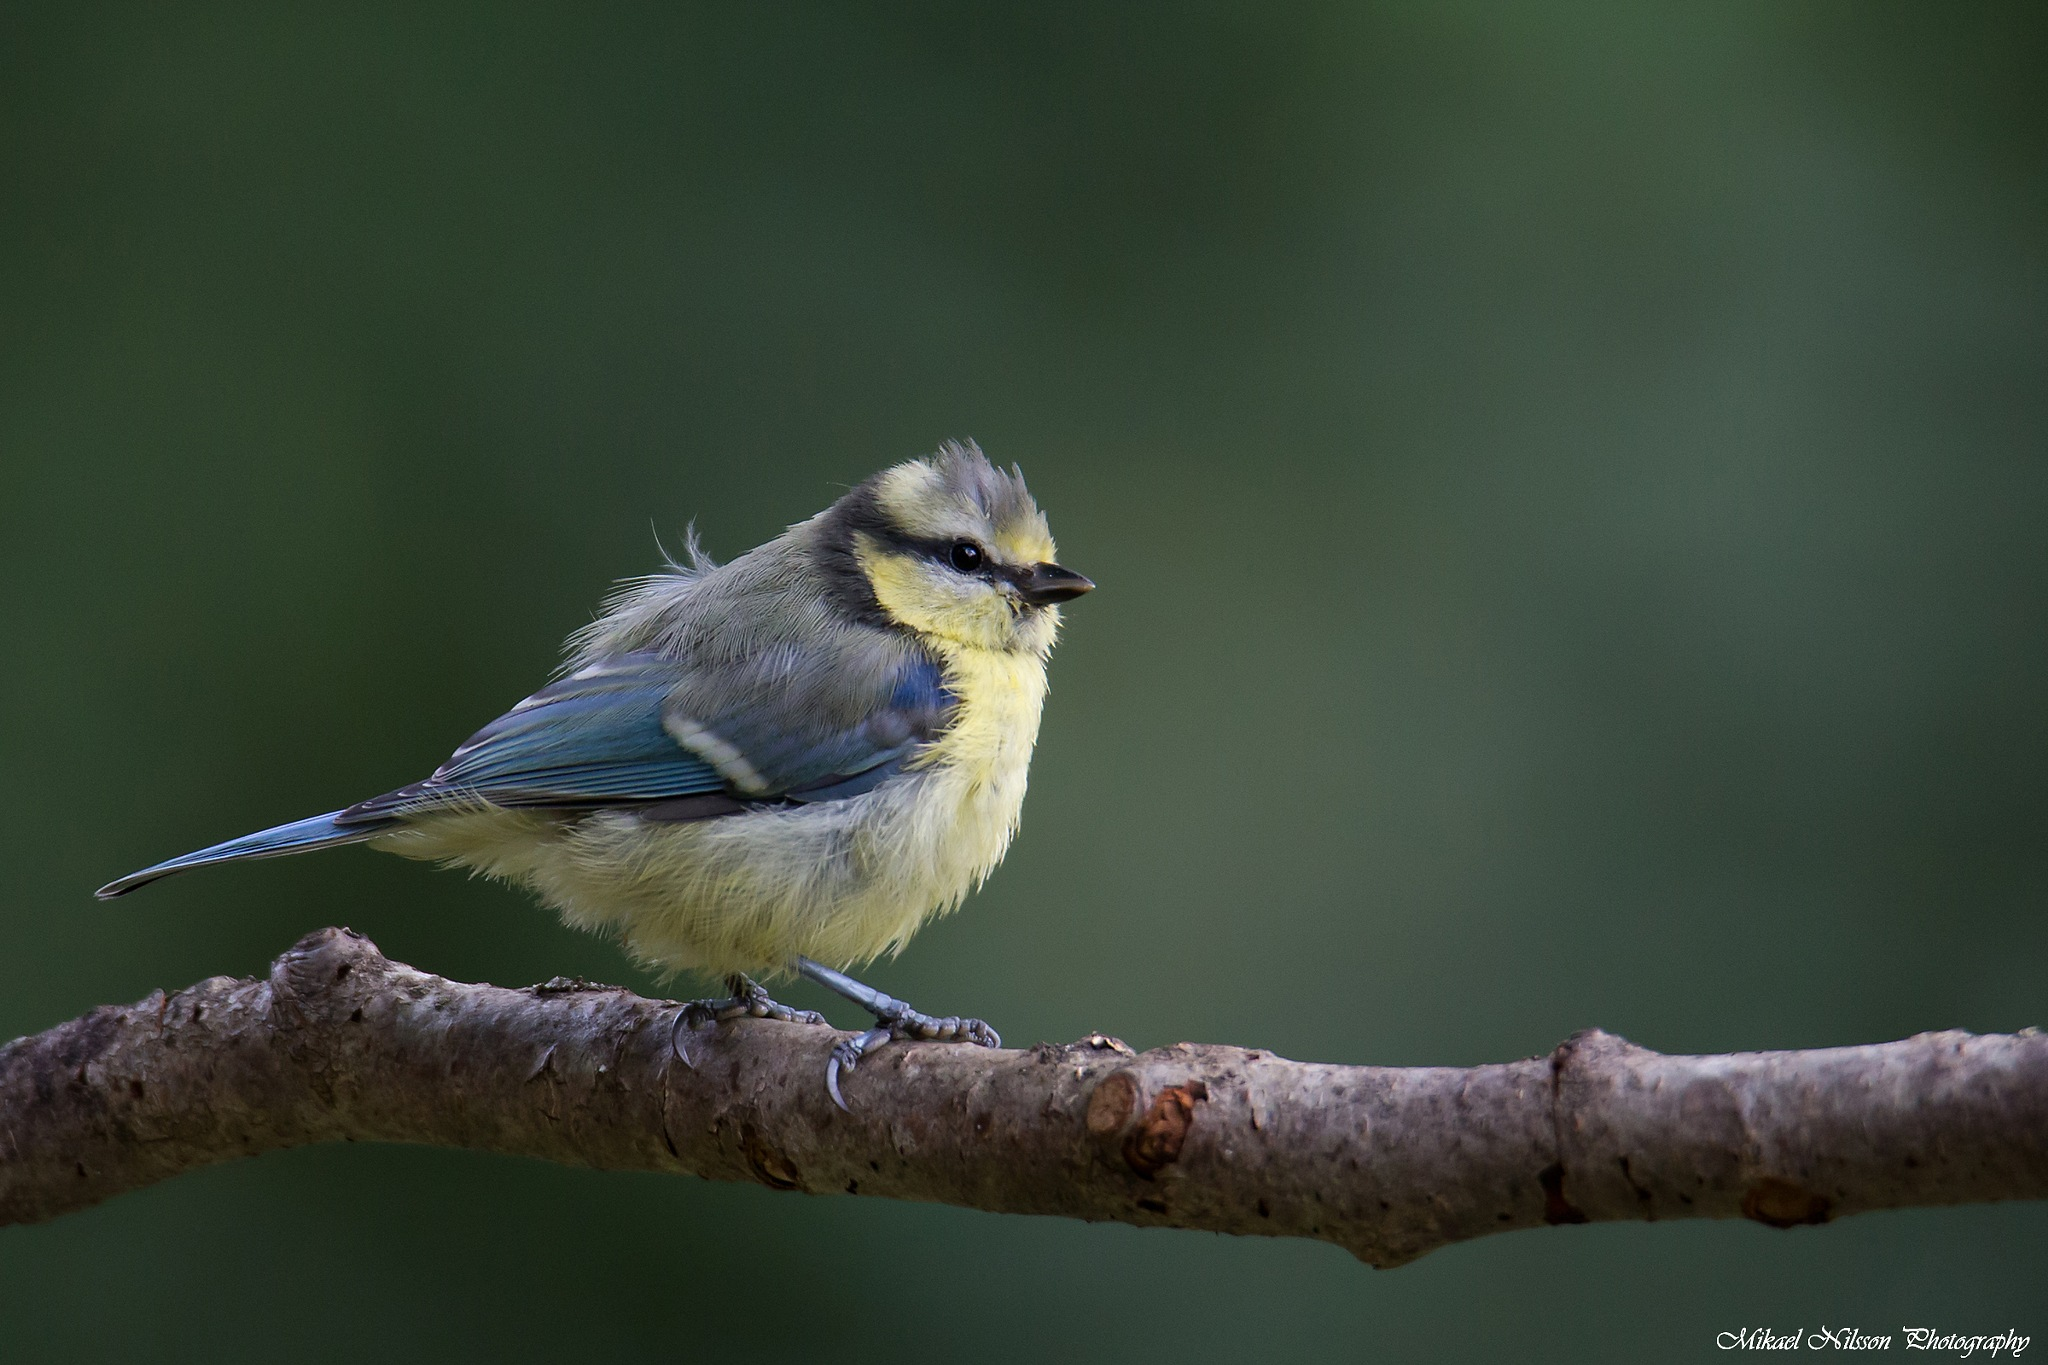 Young Blue tit by Mikael Nilsson Photography